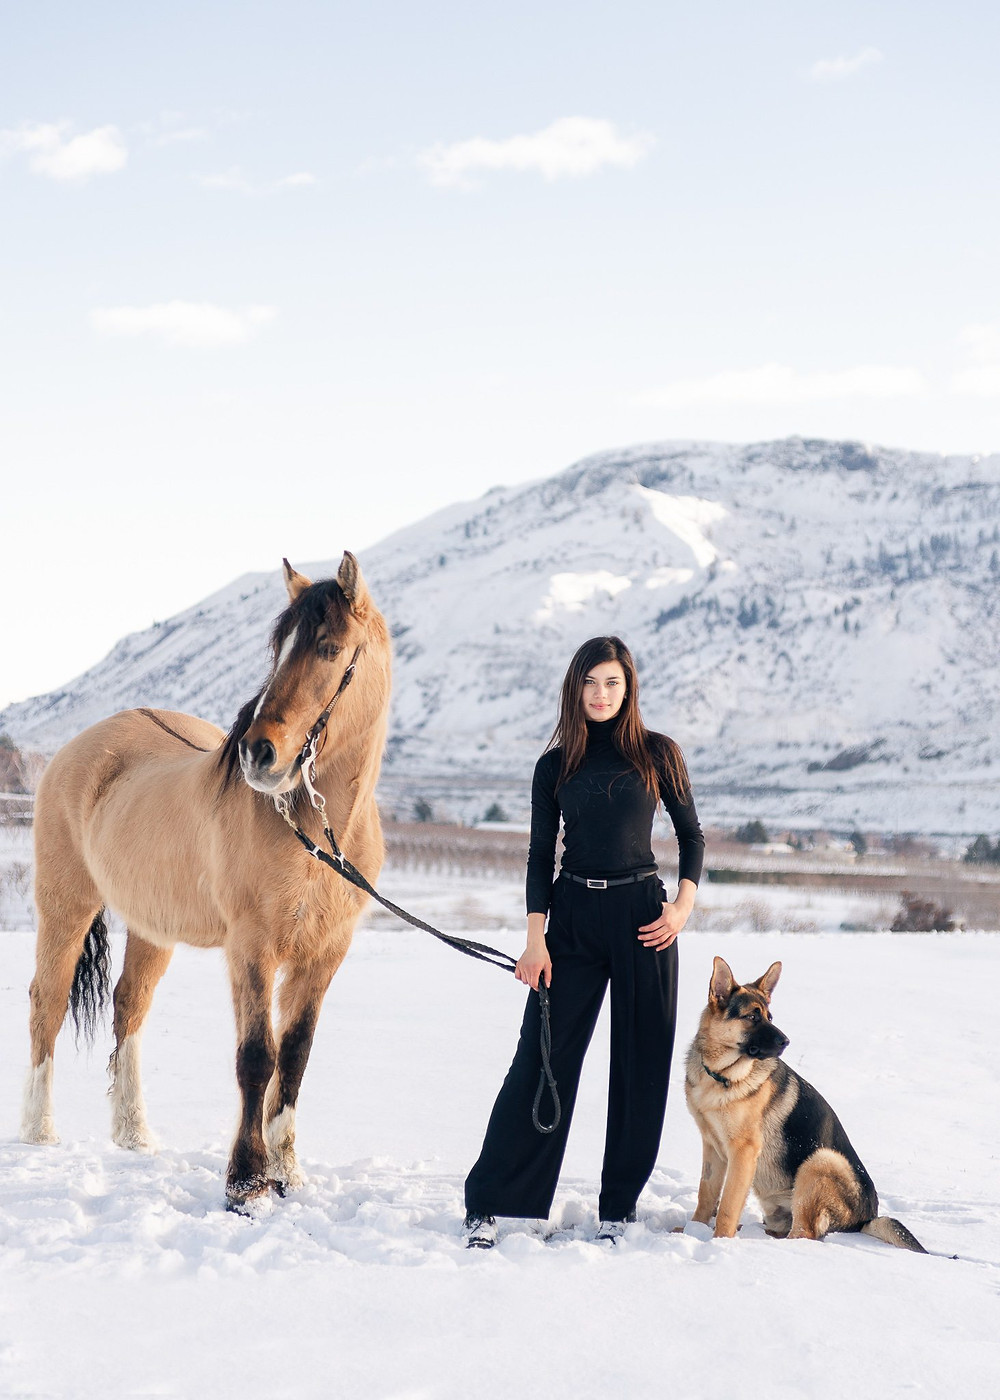 A girl with long dark hair, wearing all dark is standing in the snow in Rock Island, WA with her German shepherd dog and buckskin mustang